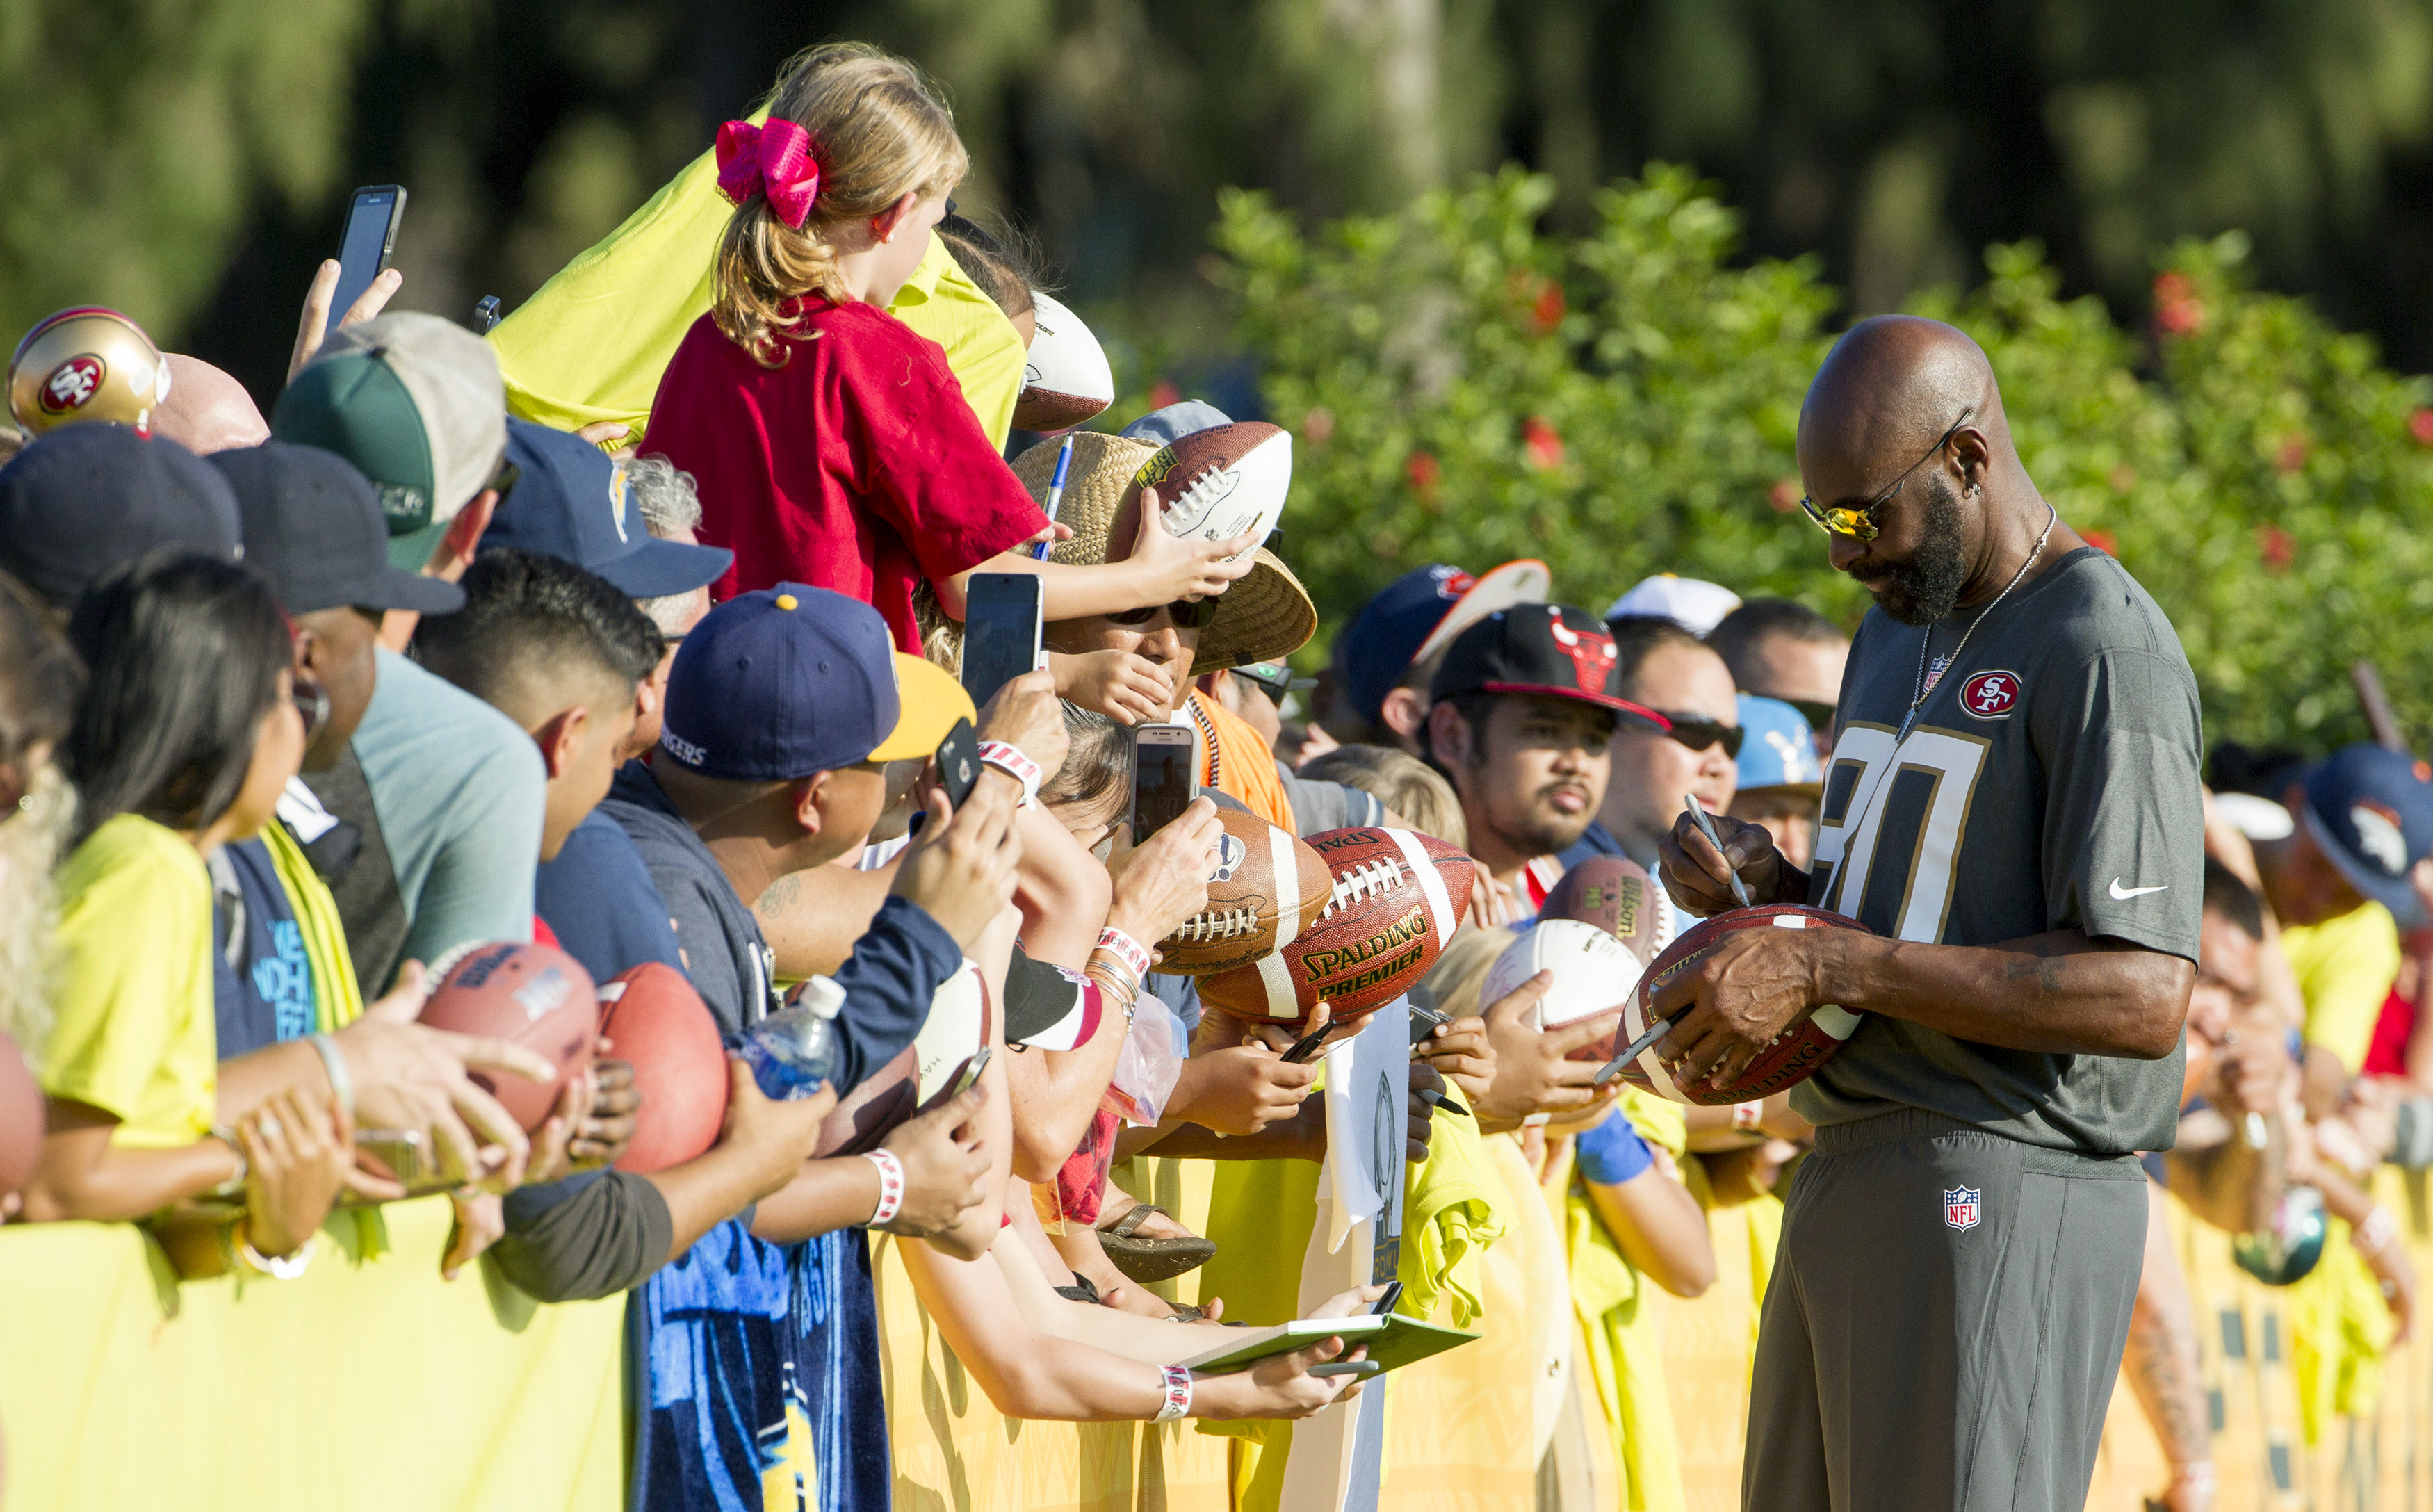 Jerry Rice, Pro Bowl legend team captain and Pro Football Hall of Famer, signs autographs for the fans during an NFL Pro Bowl football practice, Saturday, Jan. 30, 2016, in Kahuku, Hawaii. (AP Photo/Eugene Tanner)